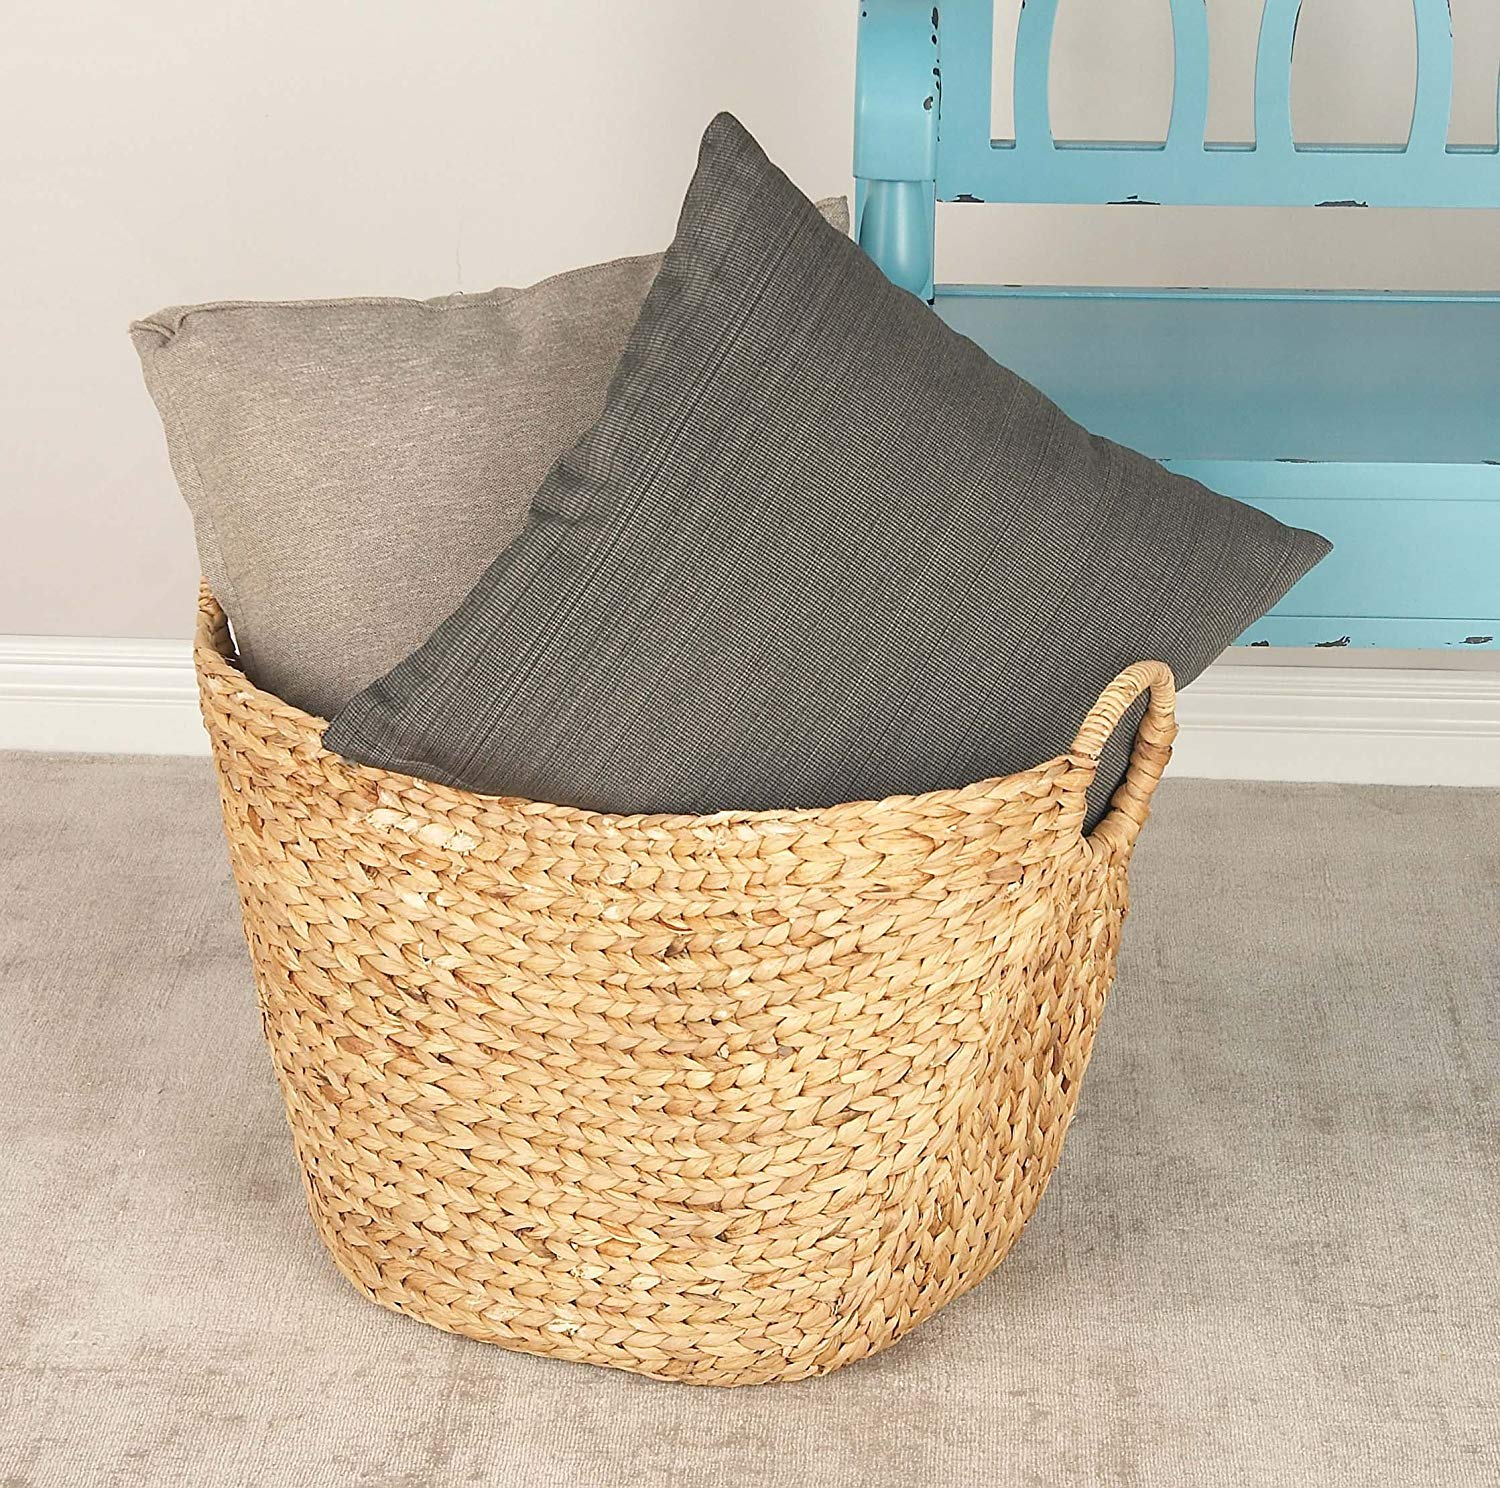 Deco 79 Large Seagrass Woven Wicker Basket. Courtesy of Amazon.